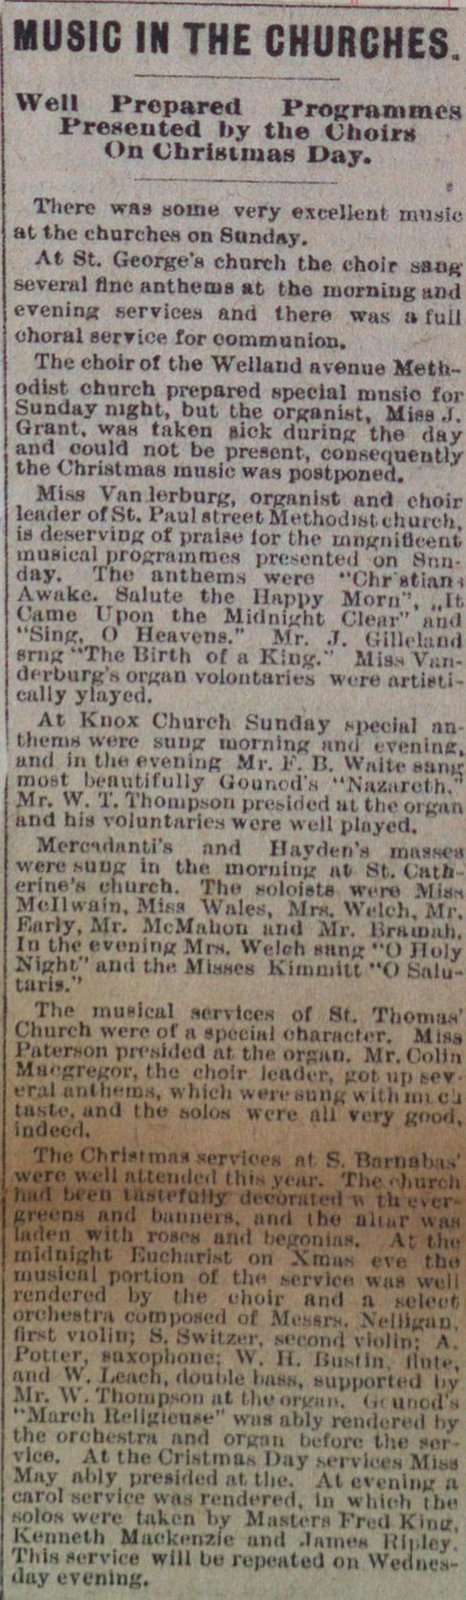 Teresa Vanderburgh's Musical Scrapbook #1 - Music in the Churches on Christmas Day